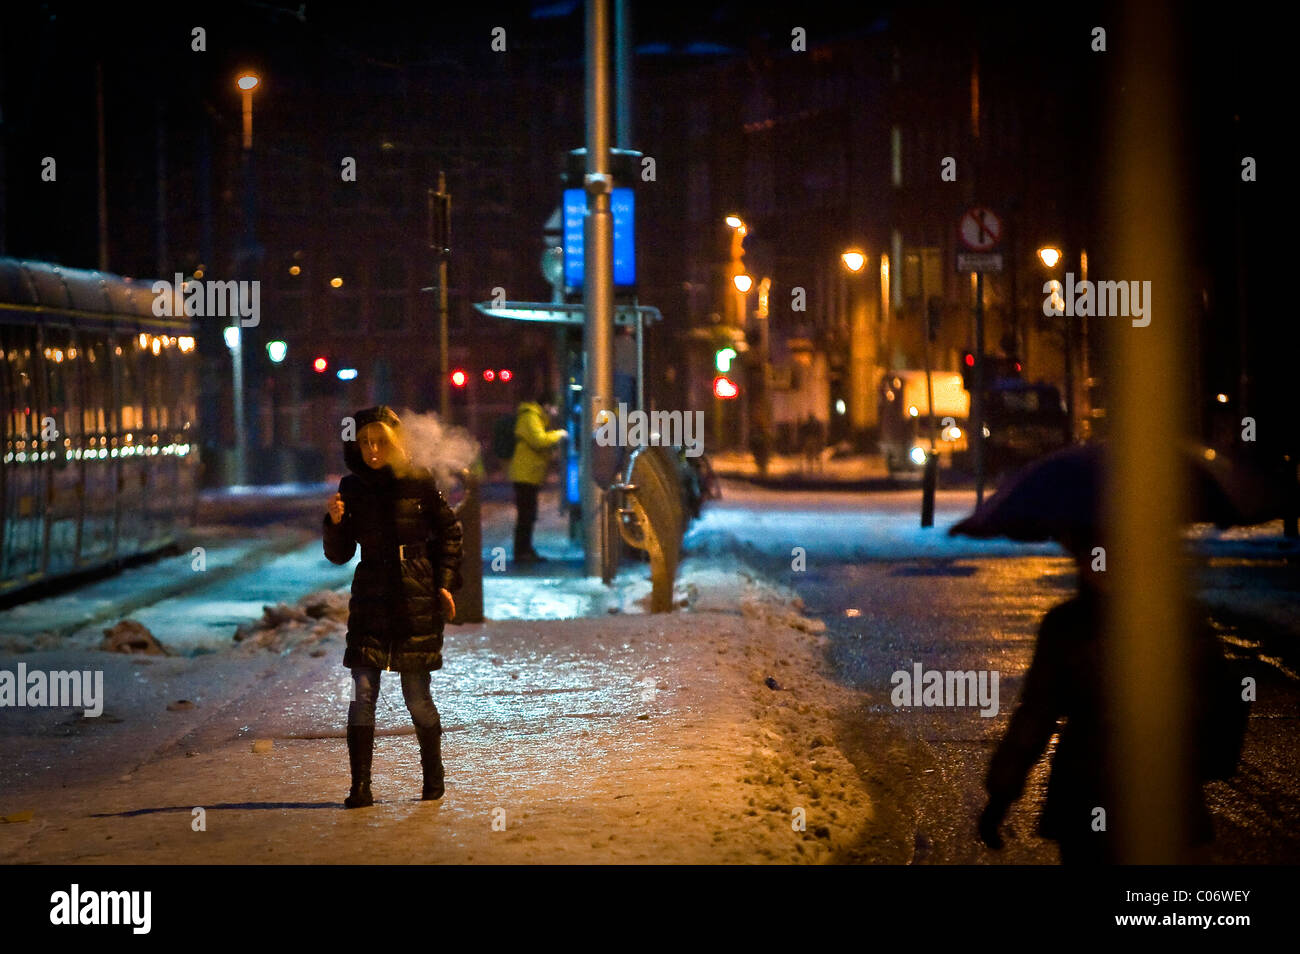 A woman smoking a cigarette tentatively walks across compacted snow and ice at a tram stop in Dublin city centre, - Stock Image